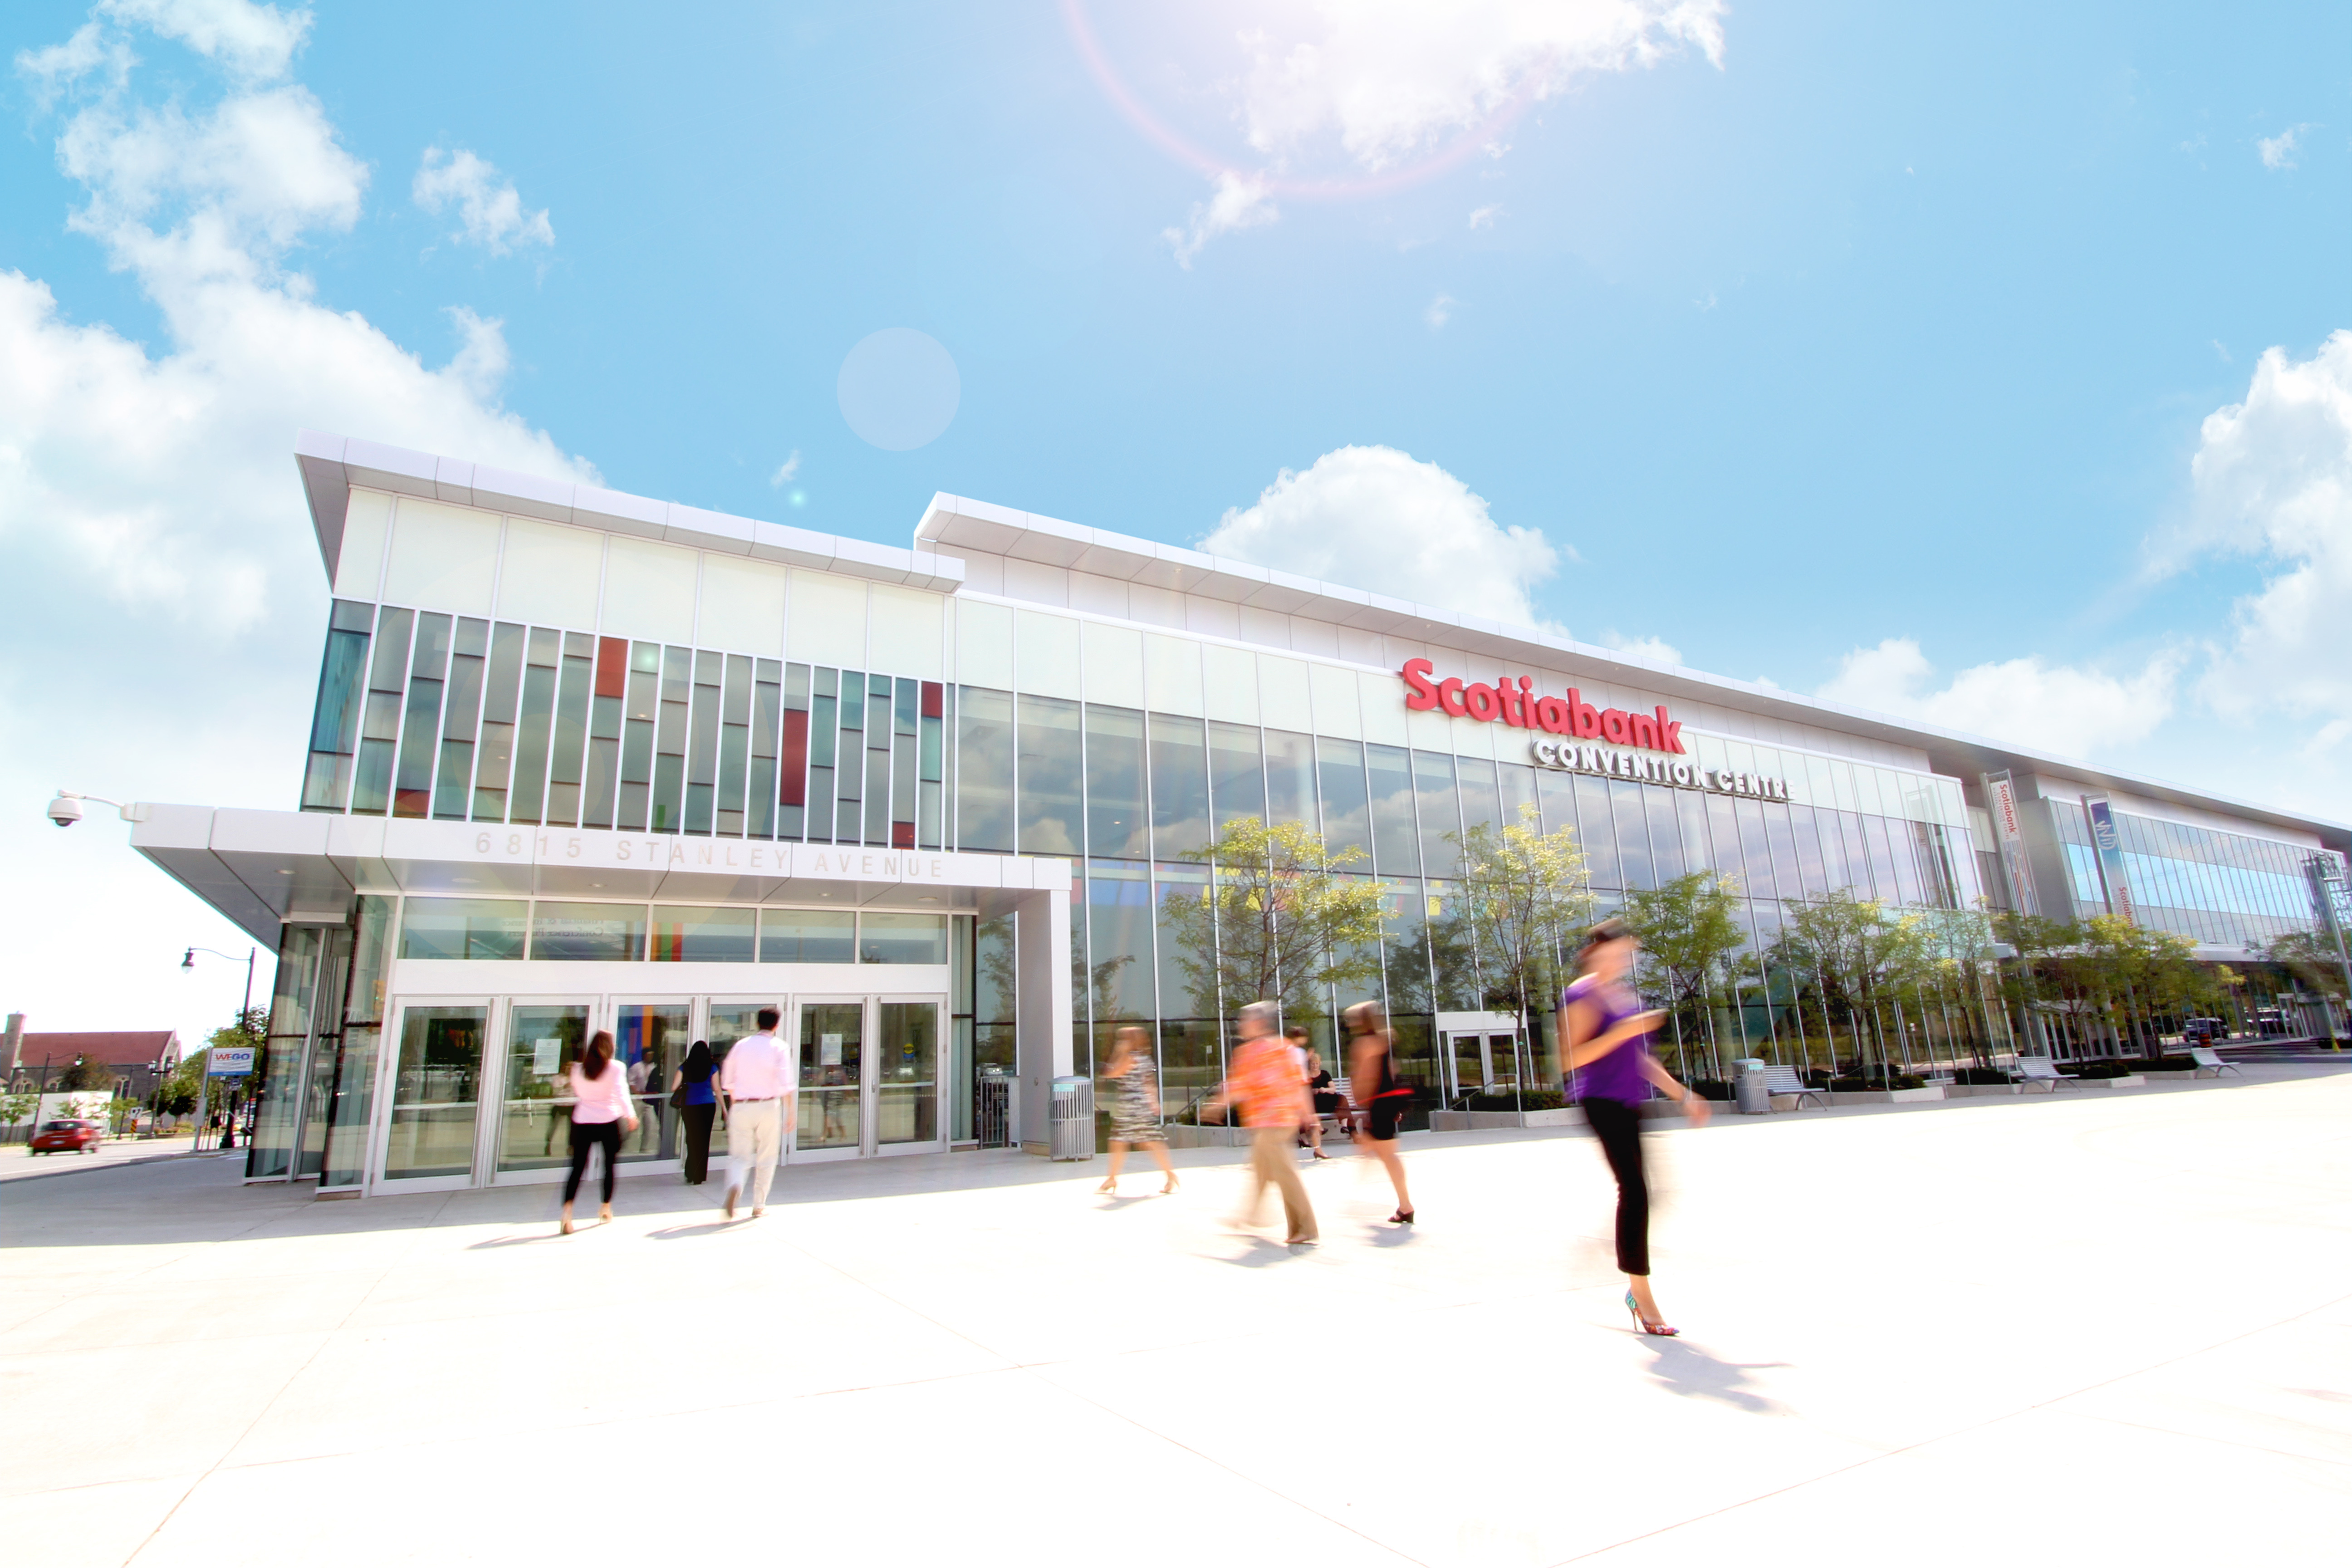 Scotiabank-Convention-Centre-1